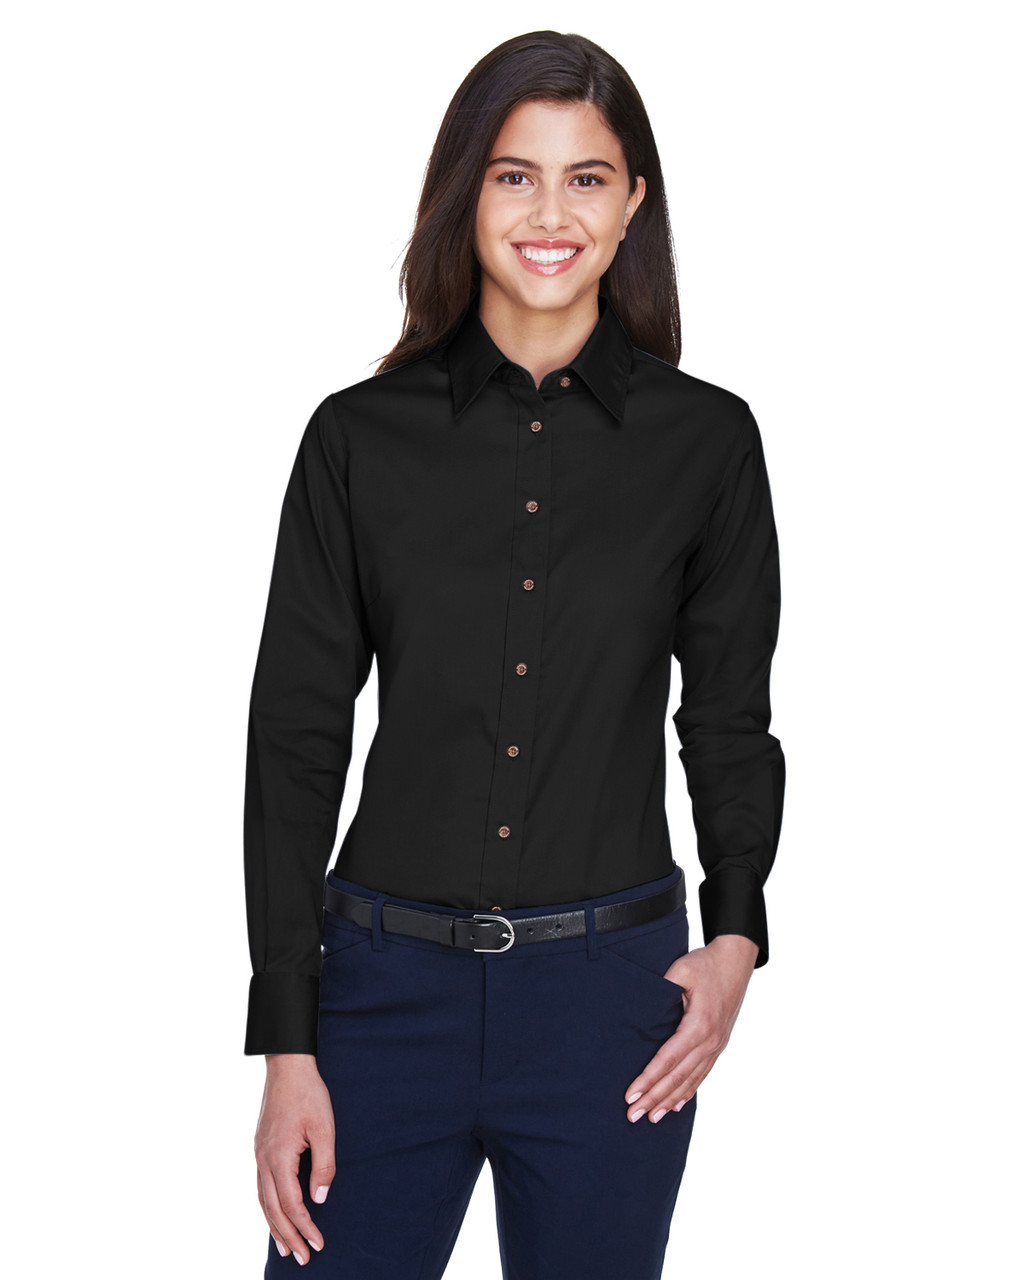 Black - M500W Harriton Easy Blend Long-Sleeve Twill Shirt with Stain-Release | BlankClothing.ca